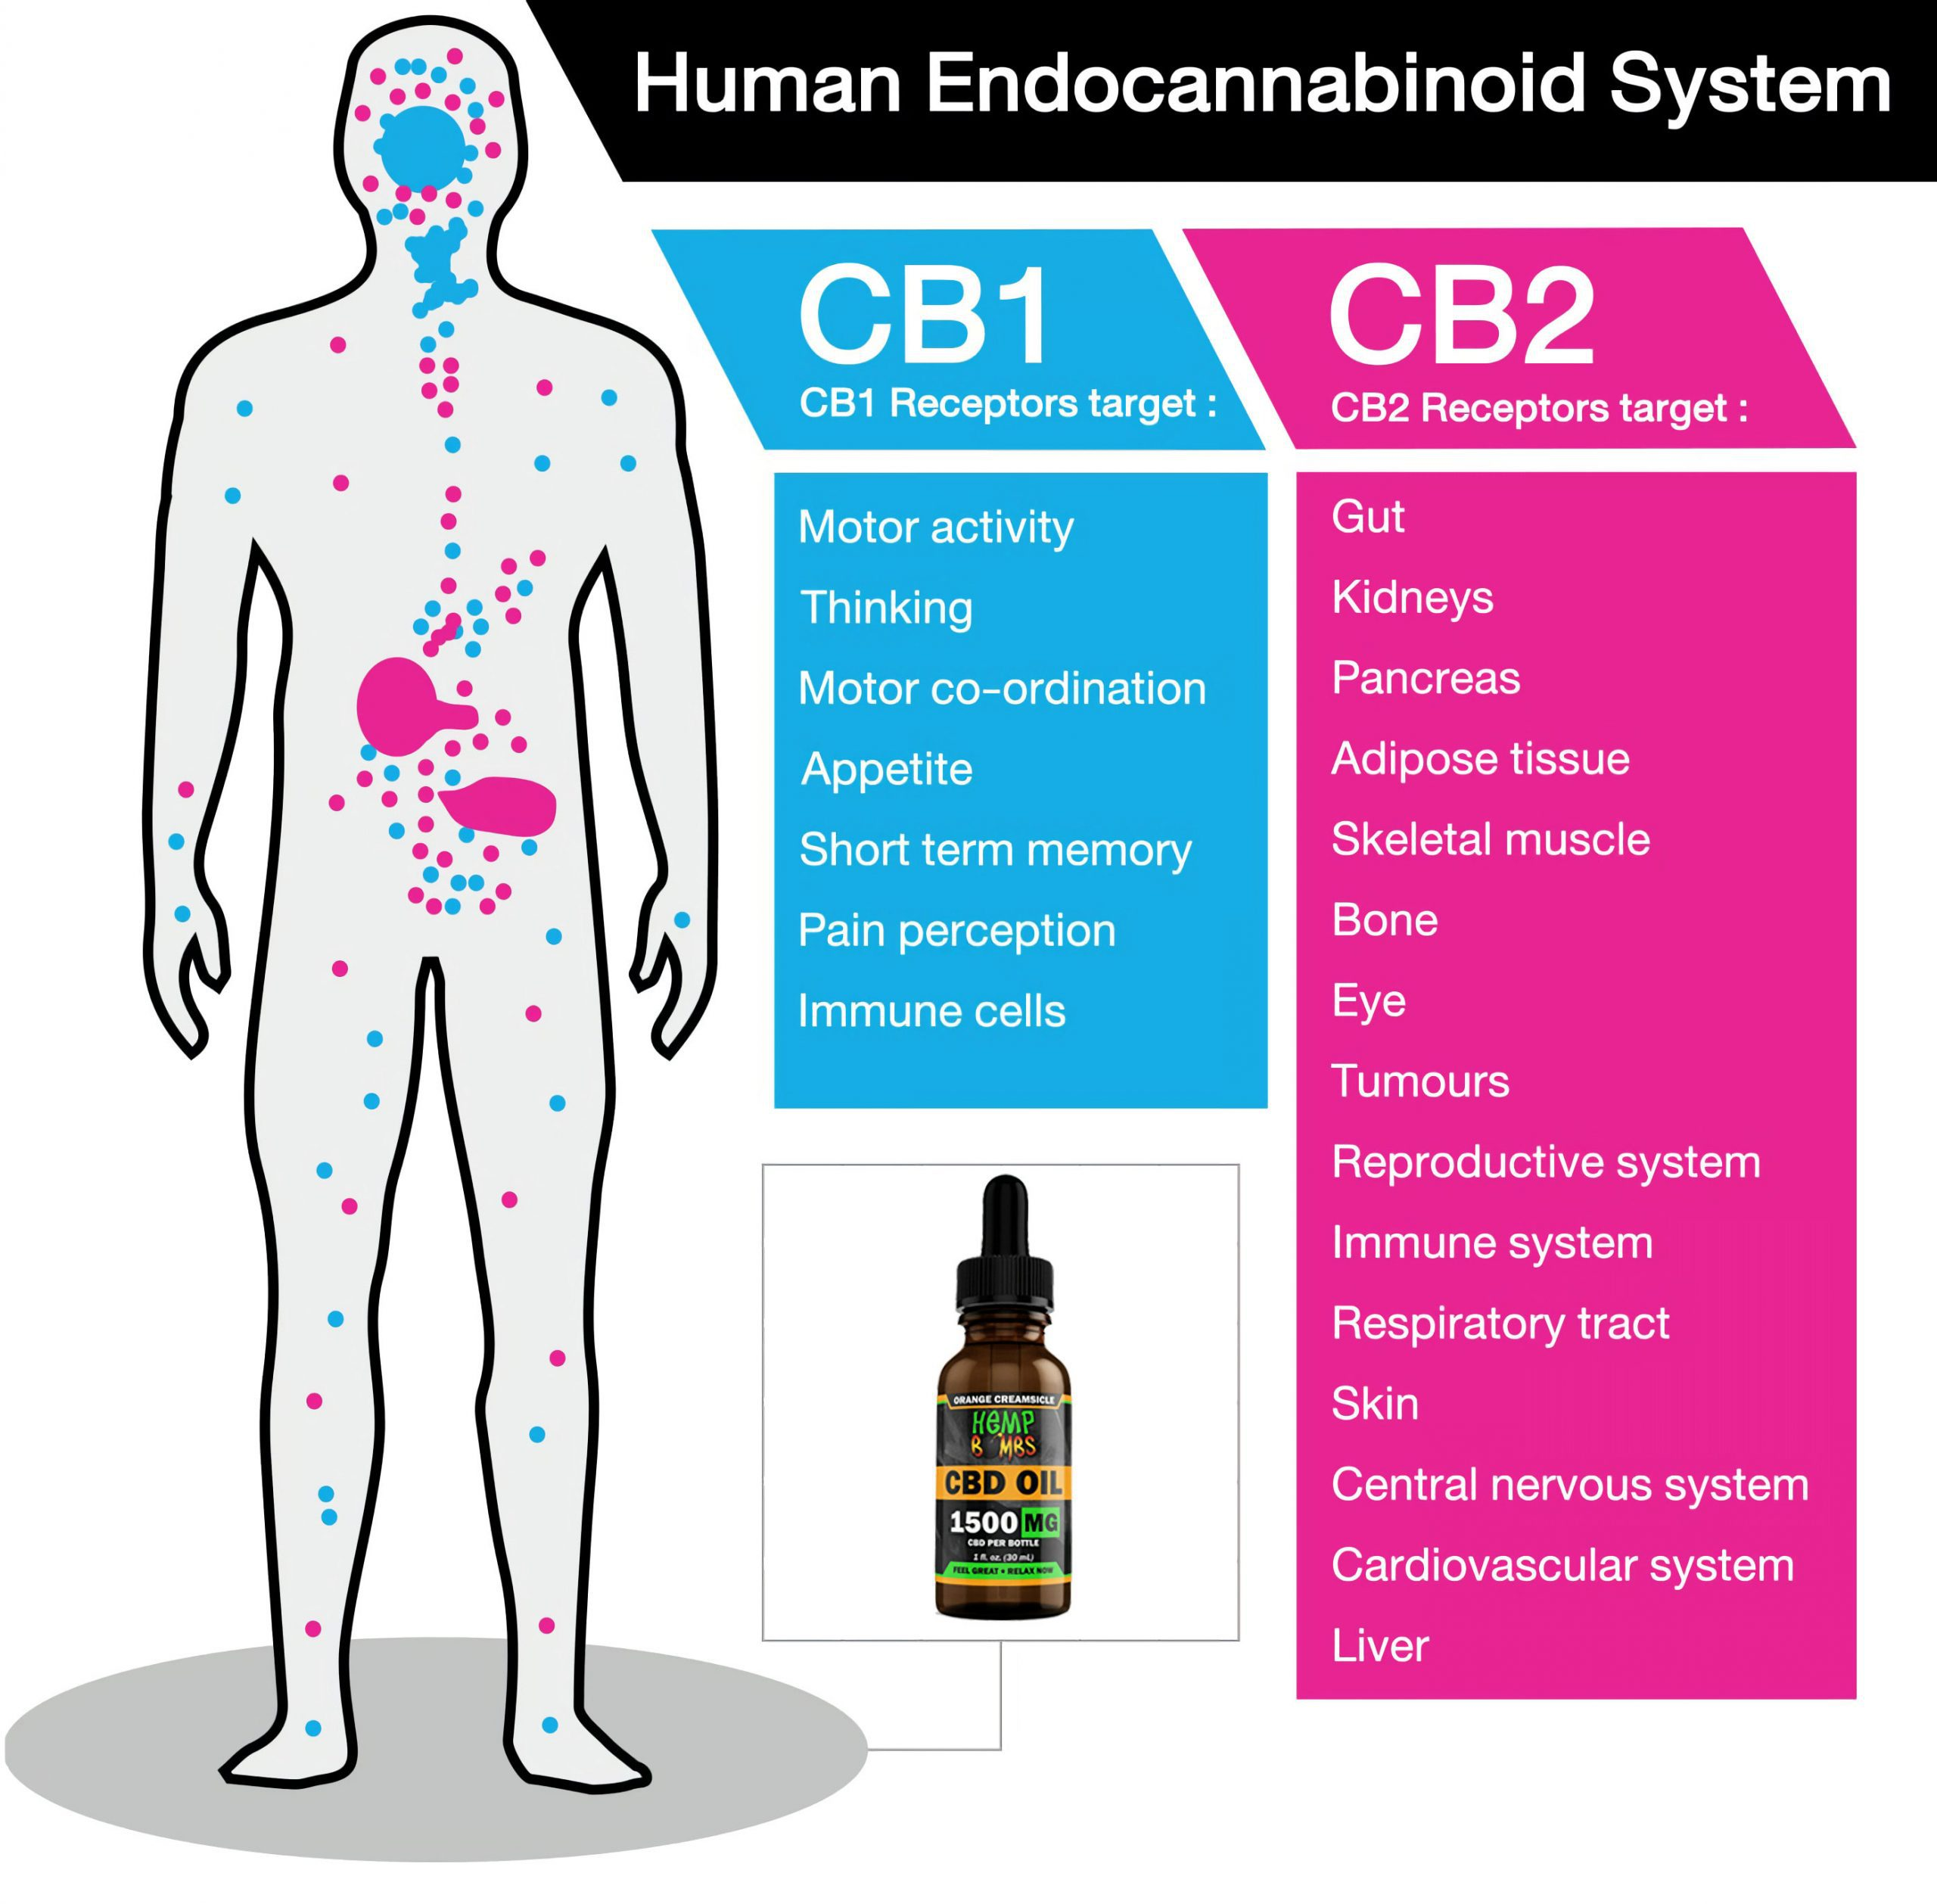 CBD takes over the endocannabinoid system and might encourage your system to produce more endocannabinoids, which helps your body maintain balance